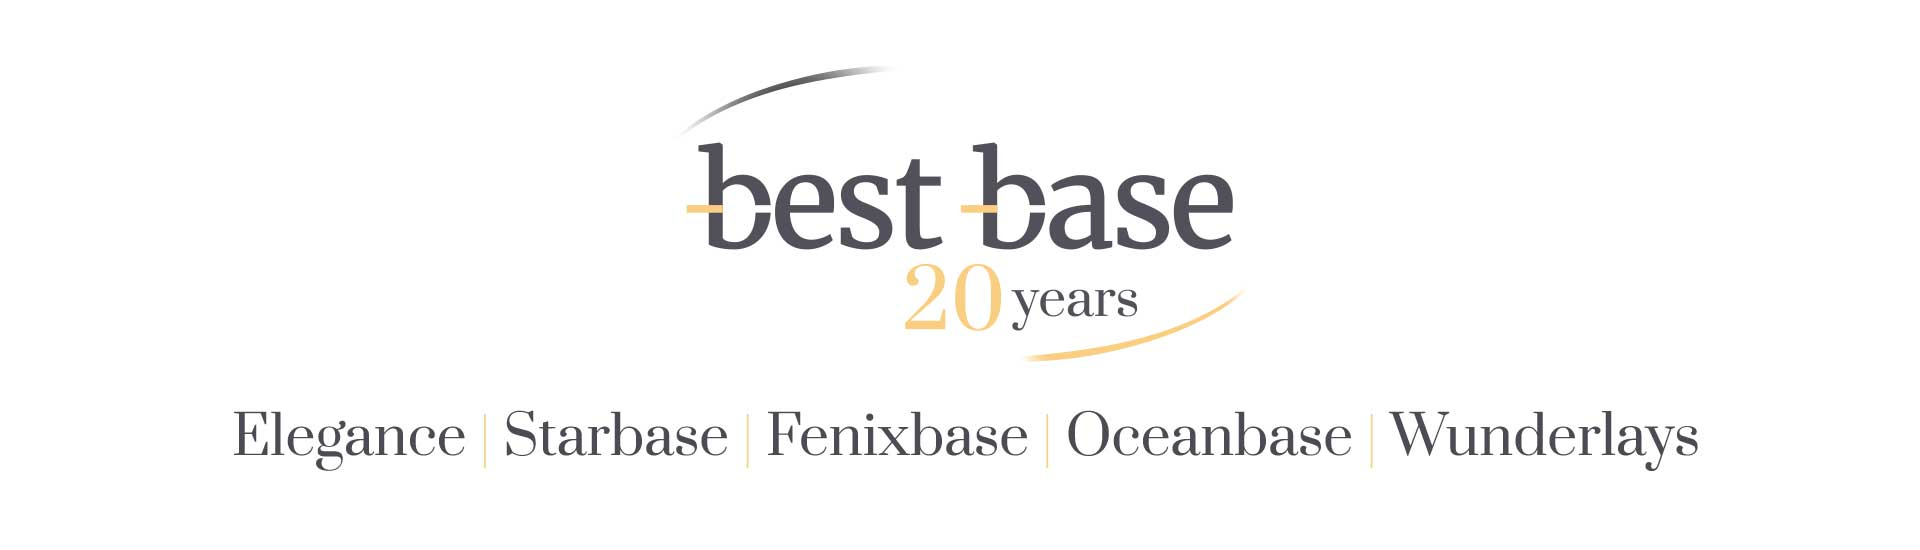 Best Base 20 years